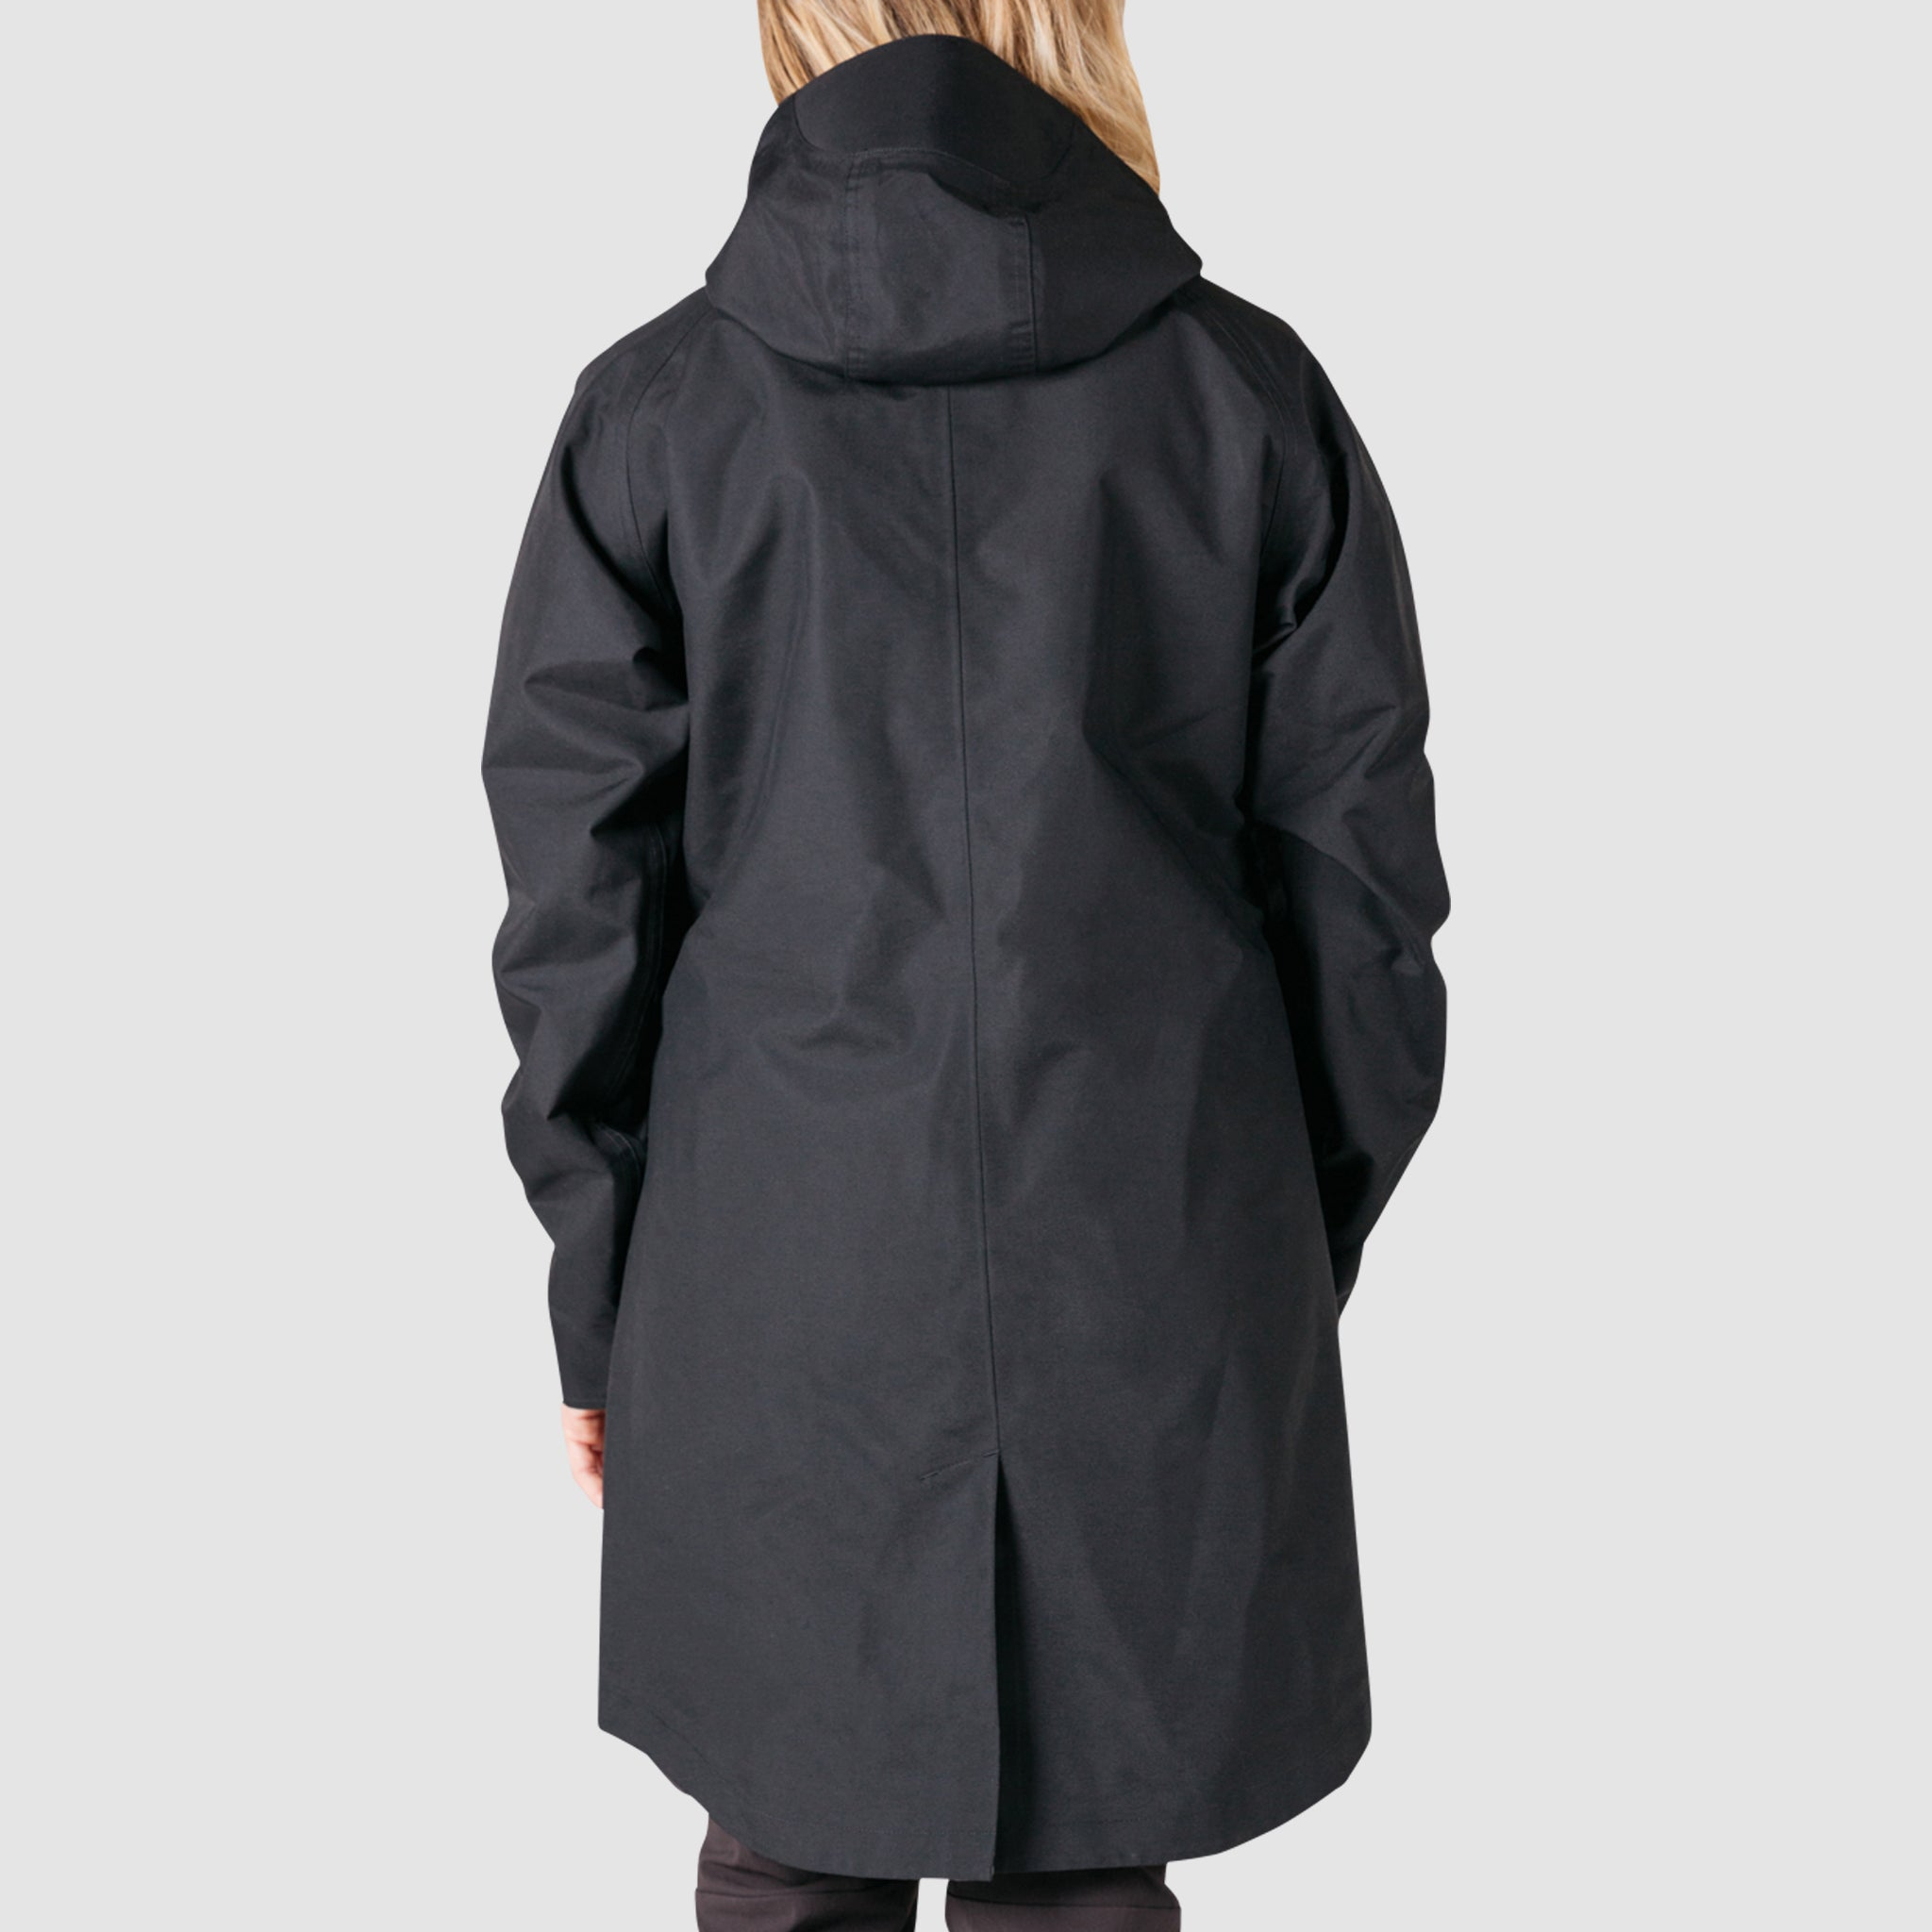 Womens Black Leather Hooded Parker Jacket Multi-Pocket Trench Coat